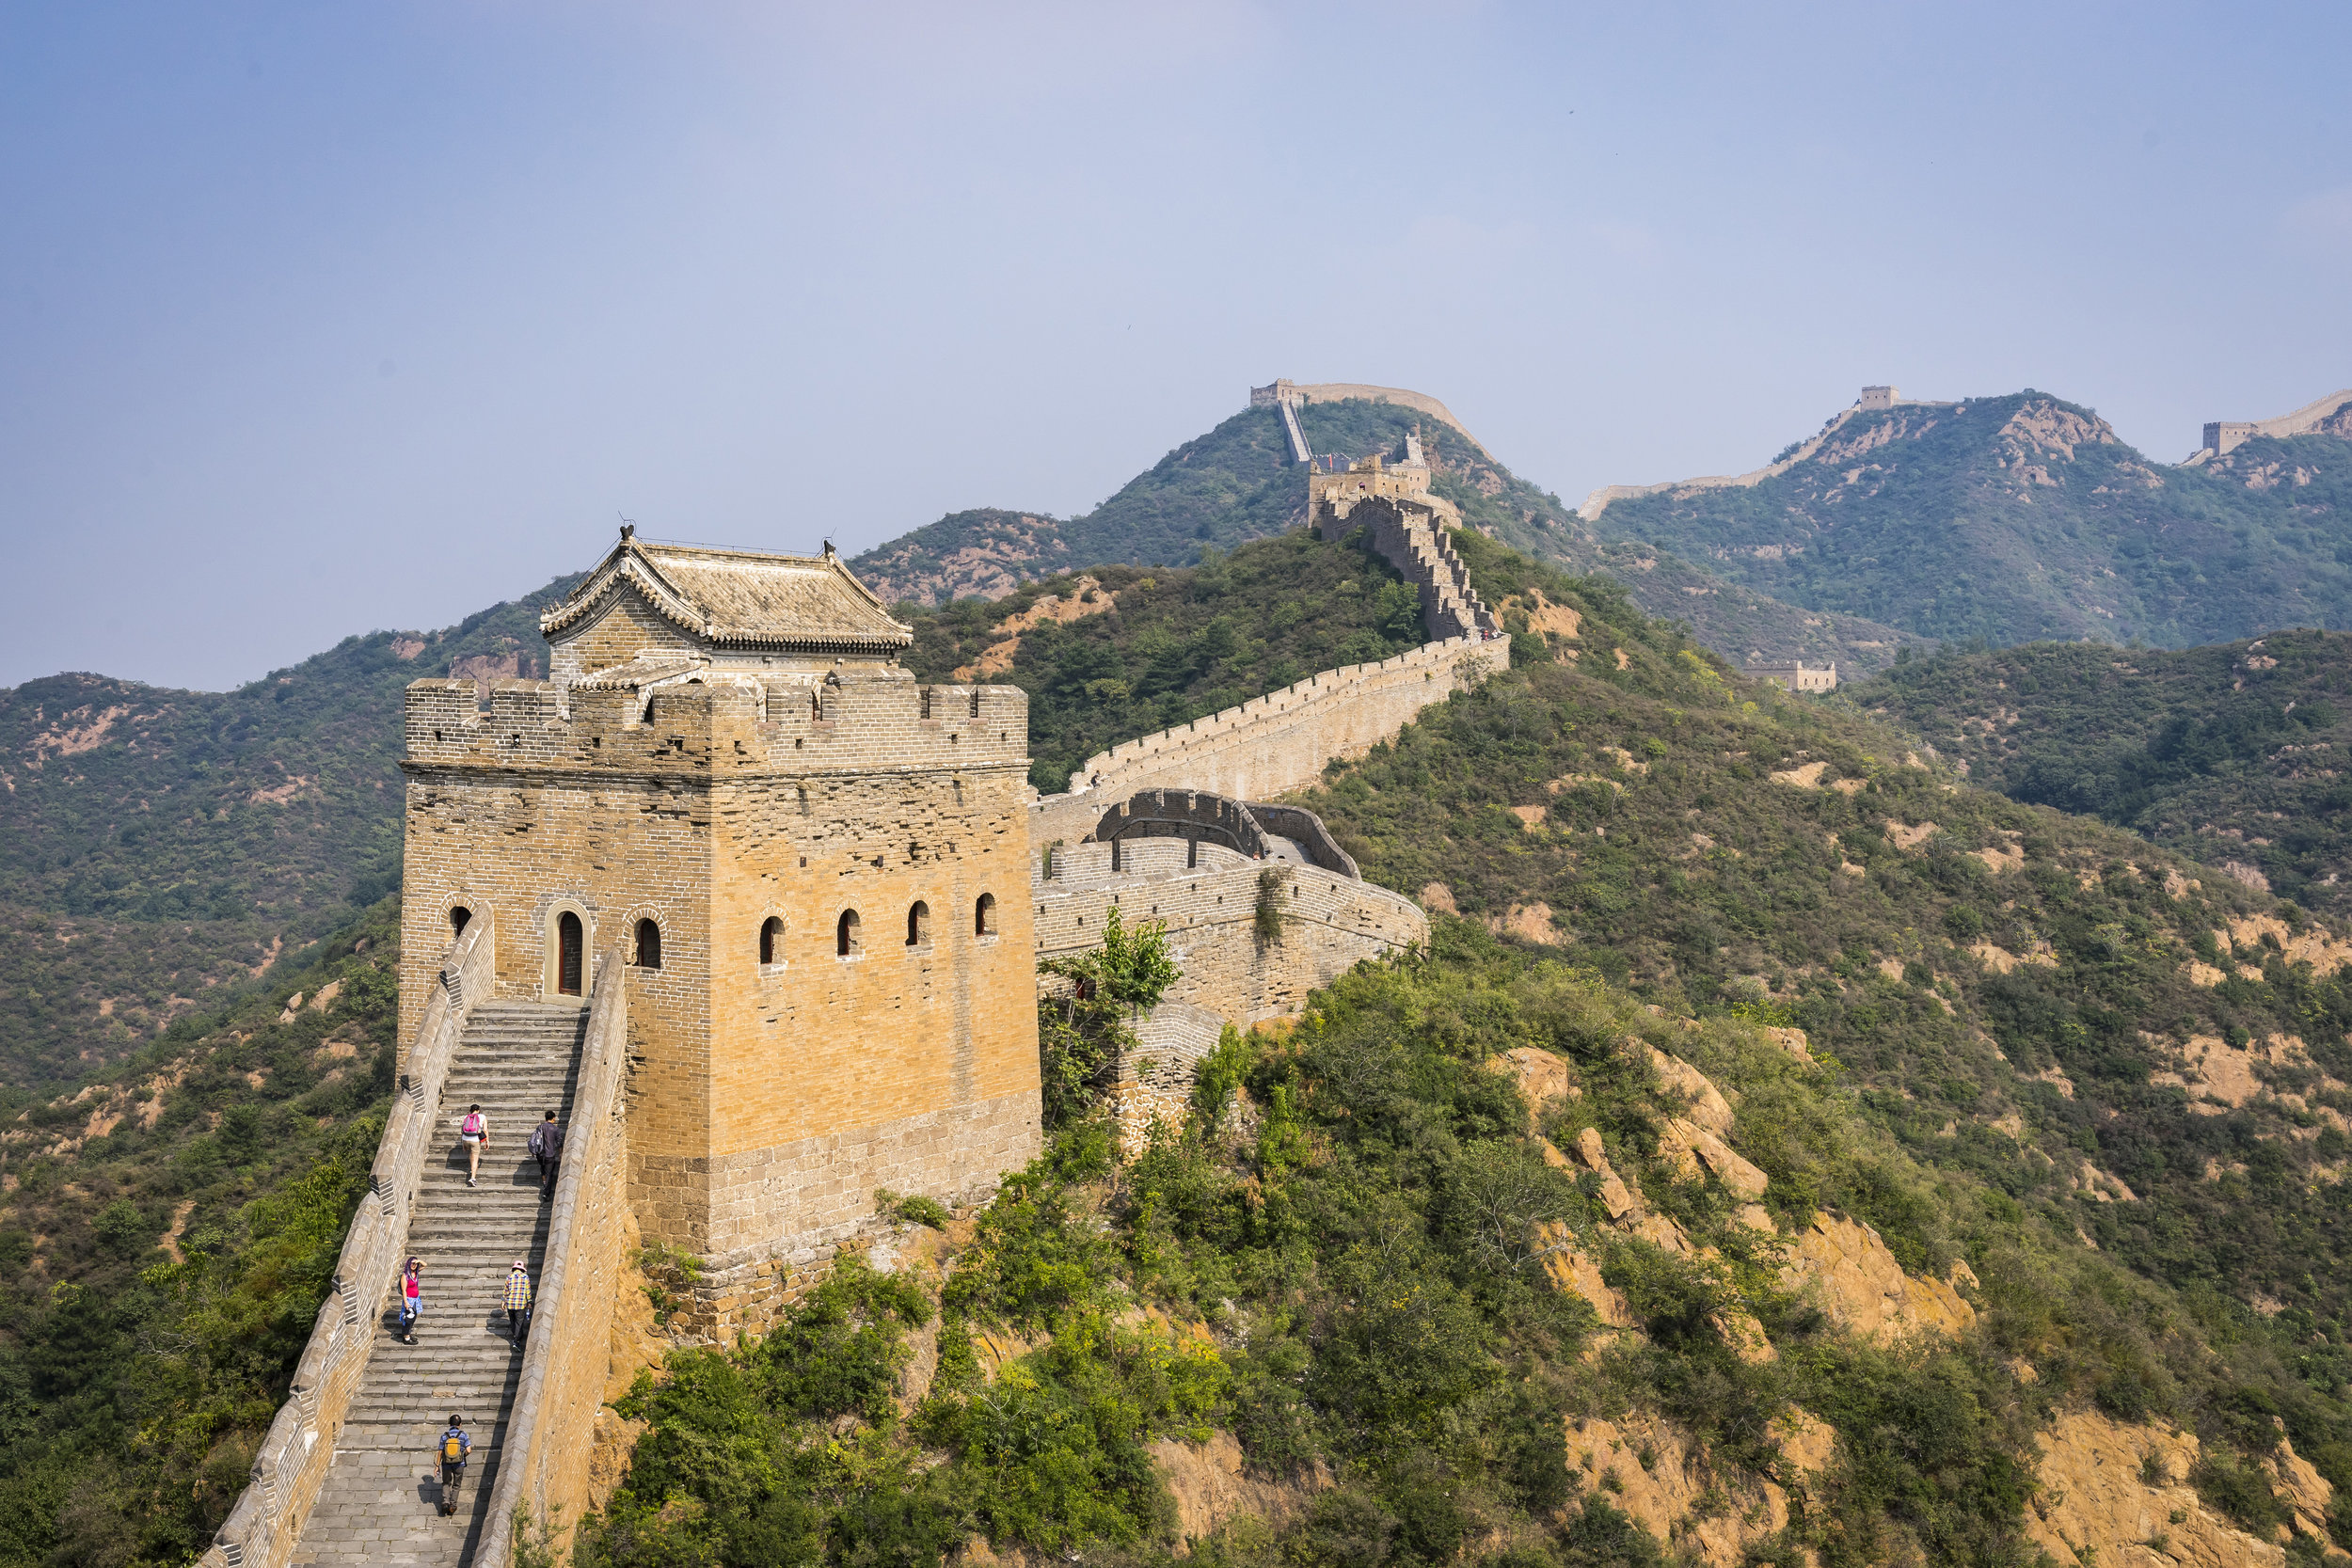 We climbed the great wall...